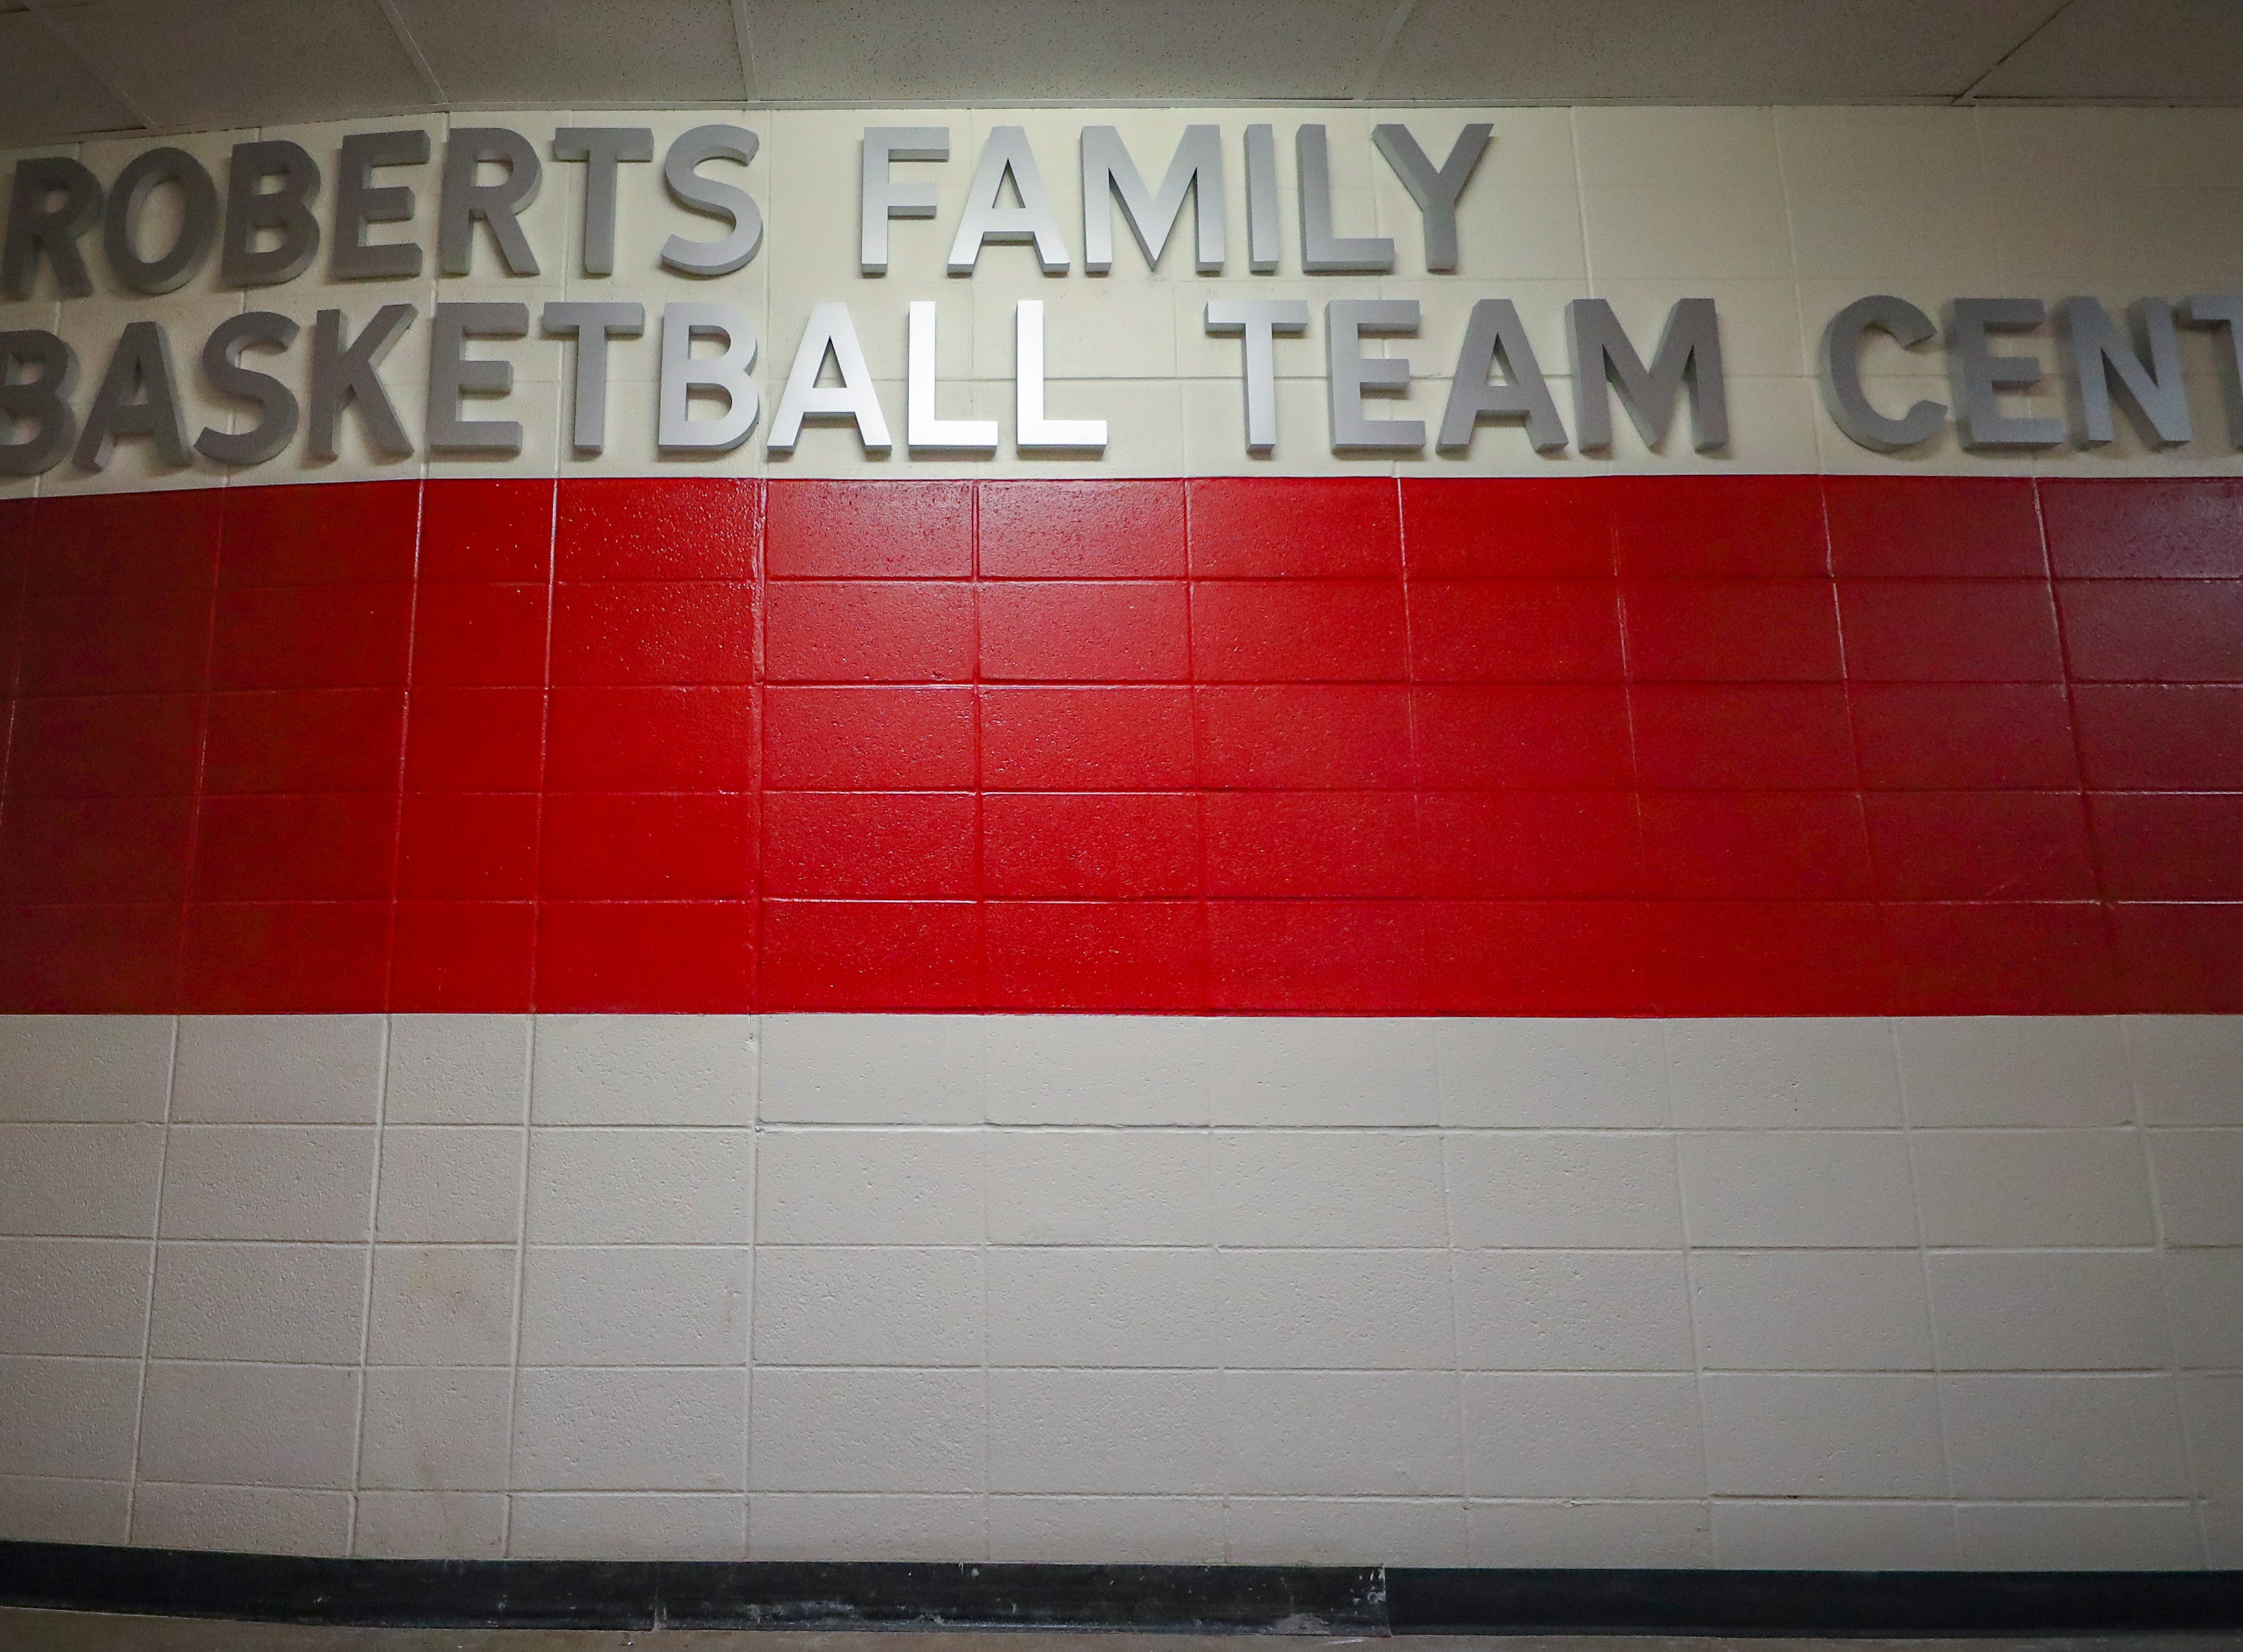 BLOOMINGTON, IN - SEPTEMBER 29, 2018 - Roberts Family Indiana Basketball Team Center. Included in its more than 4,000-square feet of space are the Andy Mohr Locker Room; the Oladipo Zeller Legacy Lounge; the Tim Garl Athletic Training Room; and the Basketball Coaches annex.